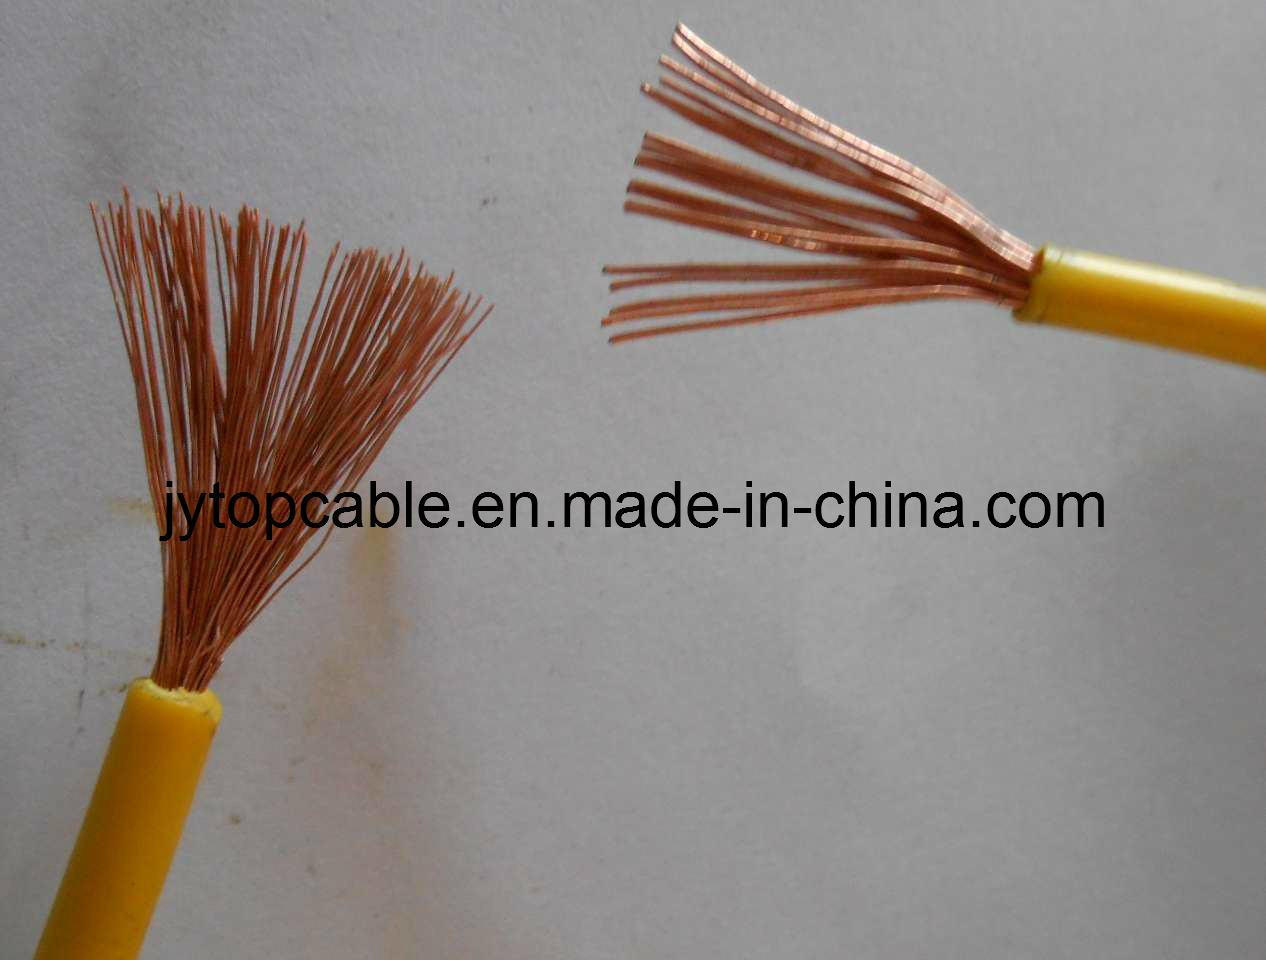 Pvc Class 5 Cable : China pvc insulated electric wire with class conductor